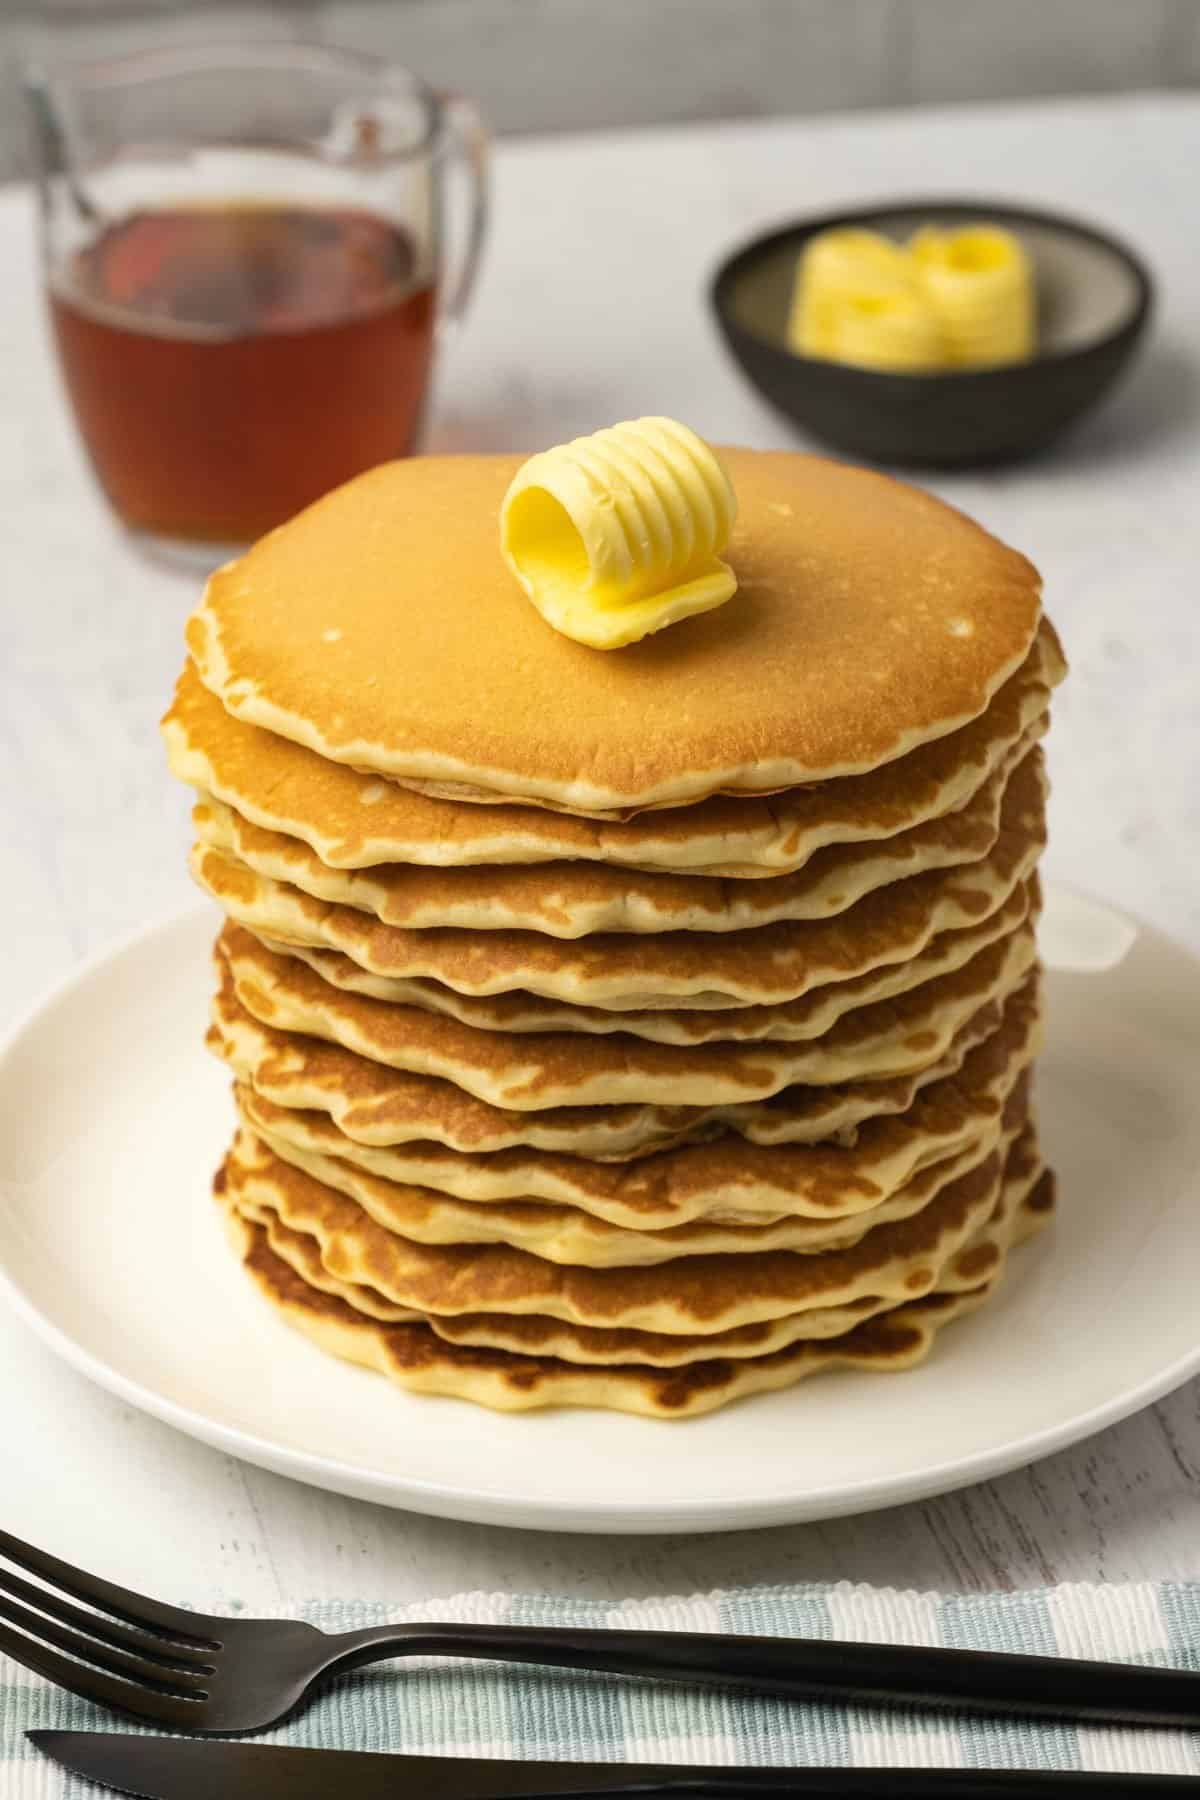 Stack of pancakes topped with a pat of butter on a white plate.